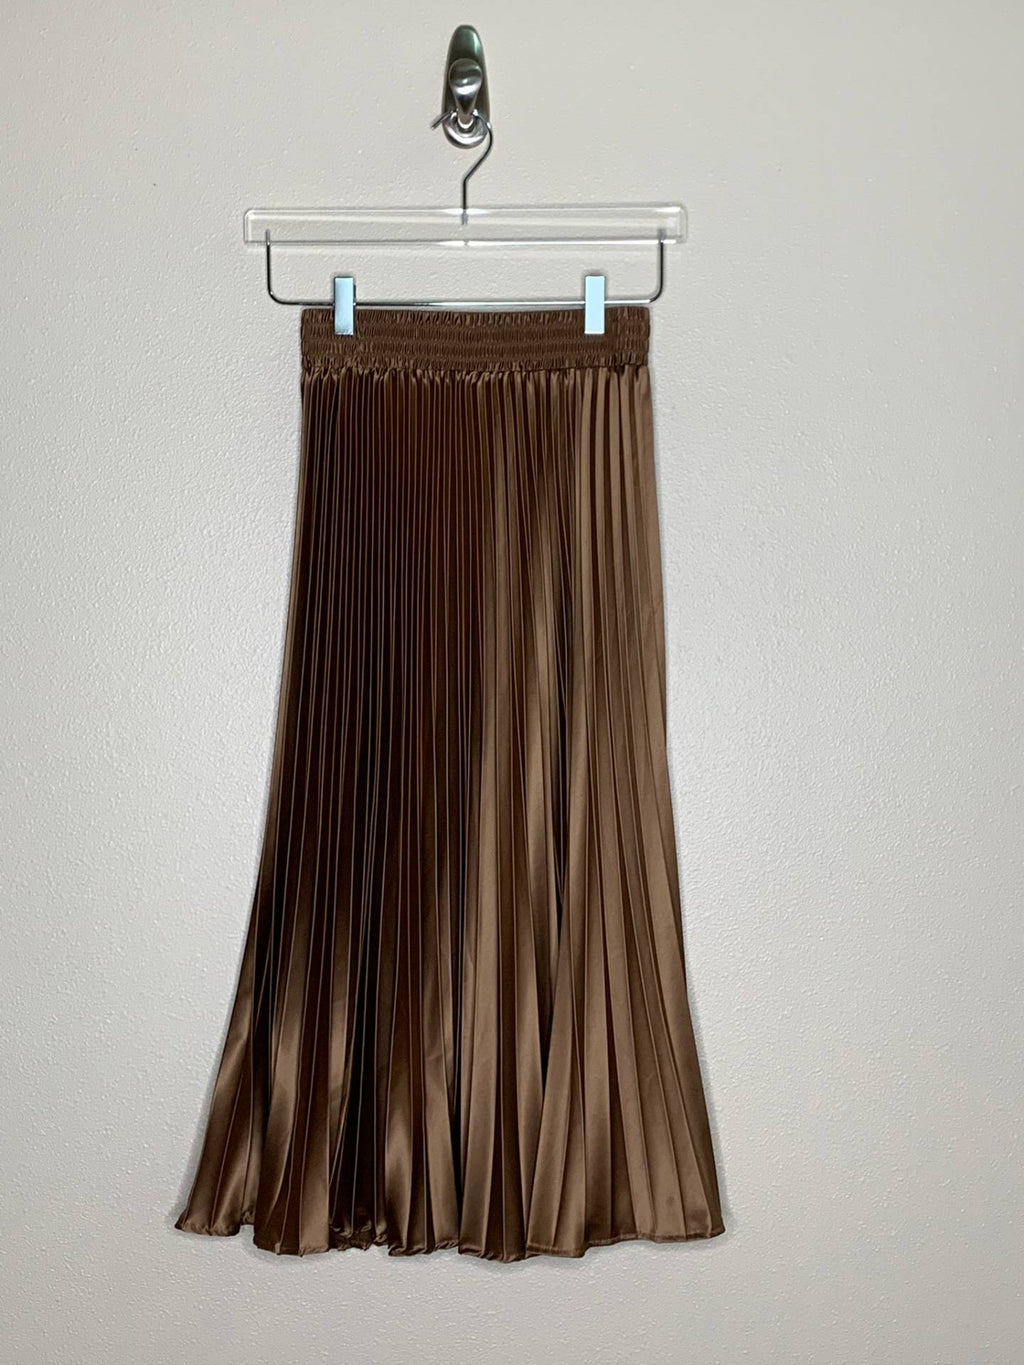 SATIN PLEATED LOMG SKIRT, BROWN - Trendy Fox Boutique